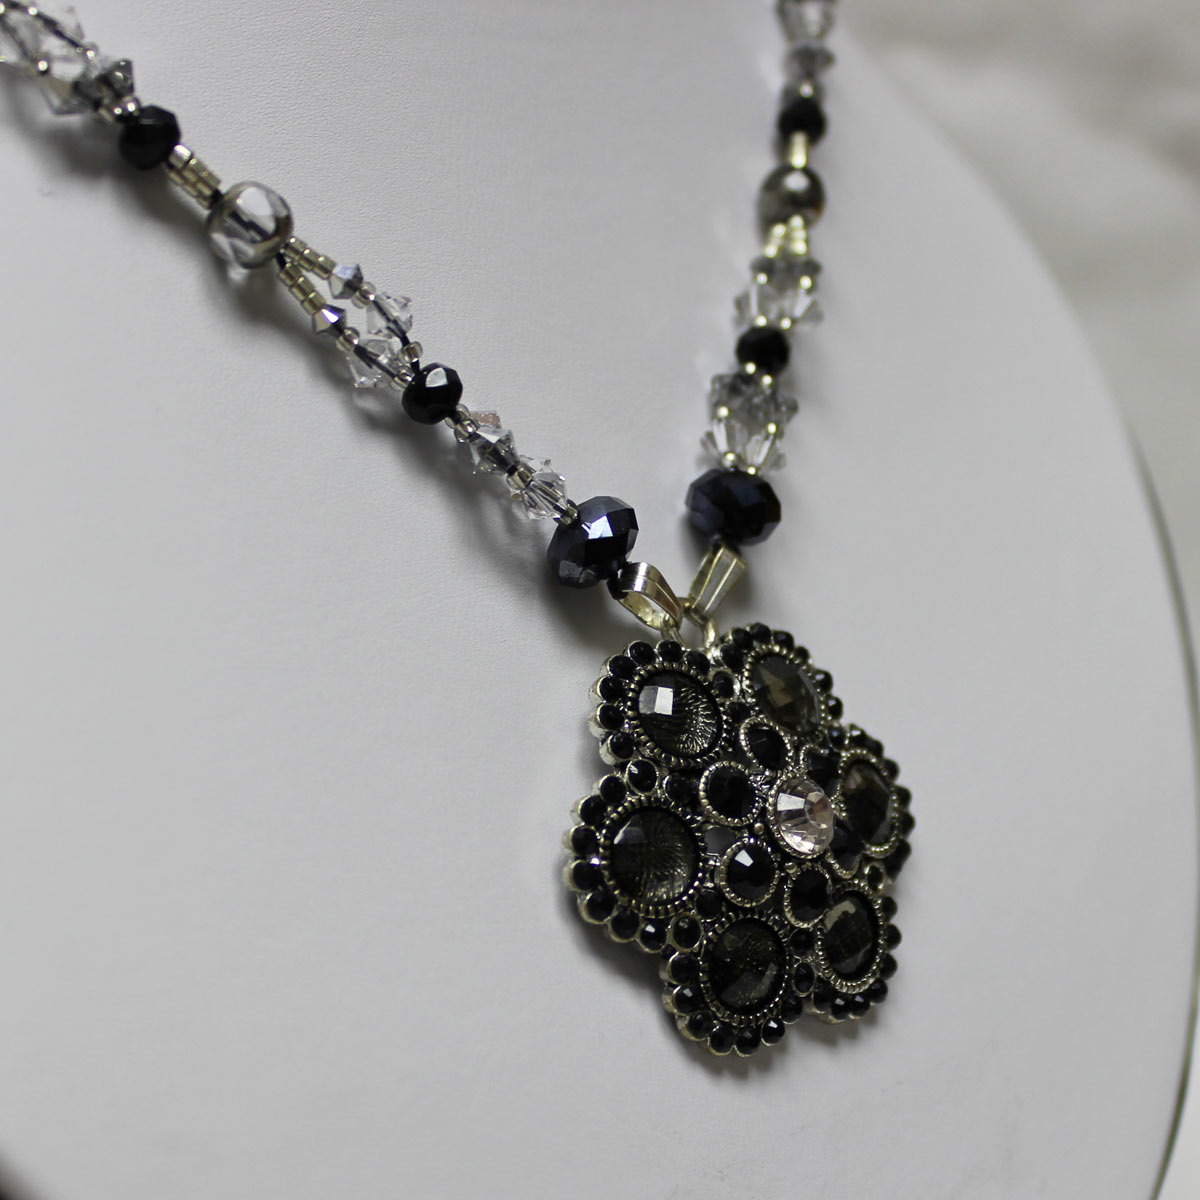 crystal statement necklace, flower charm center, hematite crystals, silver accent necklace